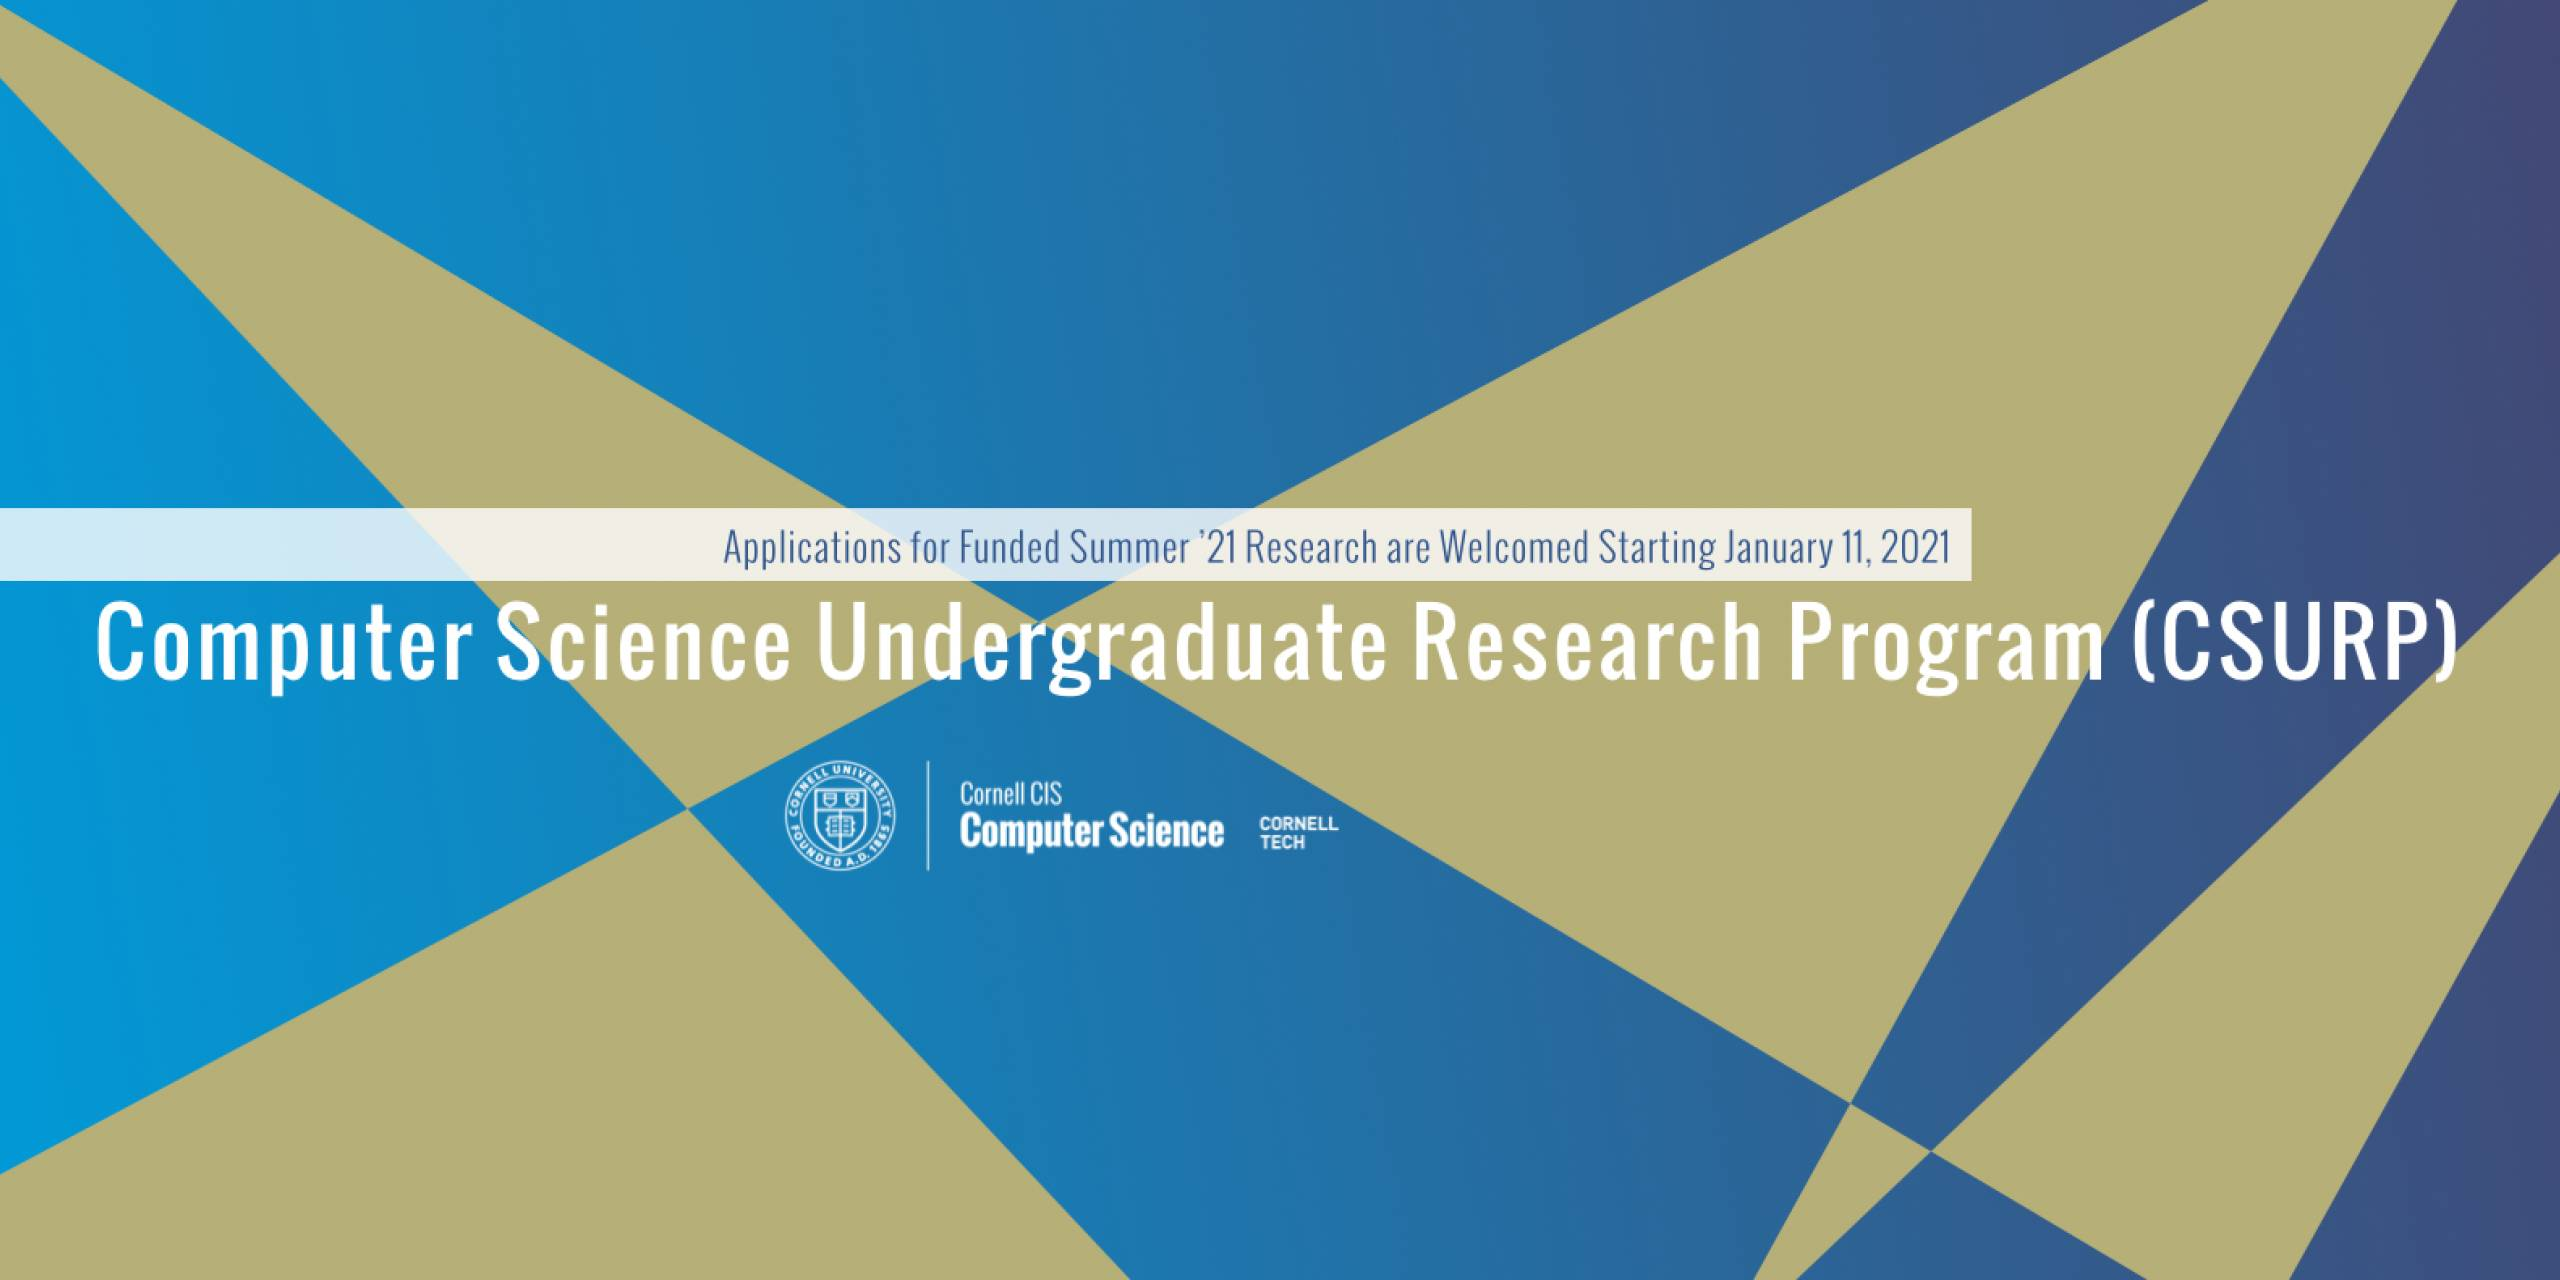 Computer Science Undergraduate Research Program (CSURP)